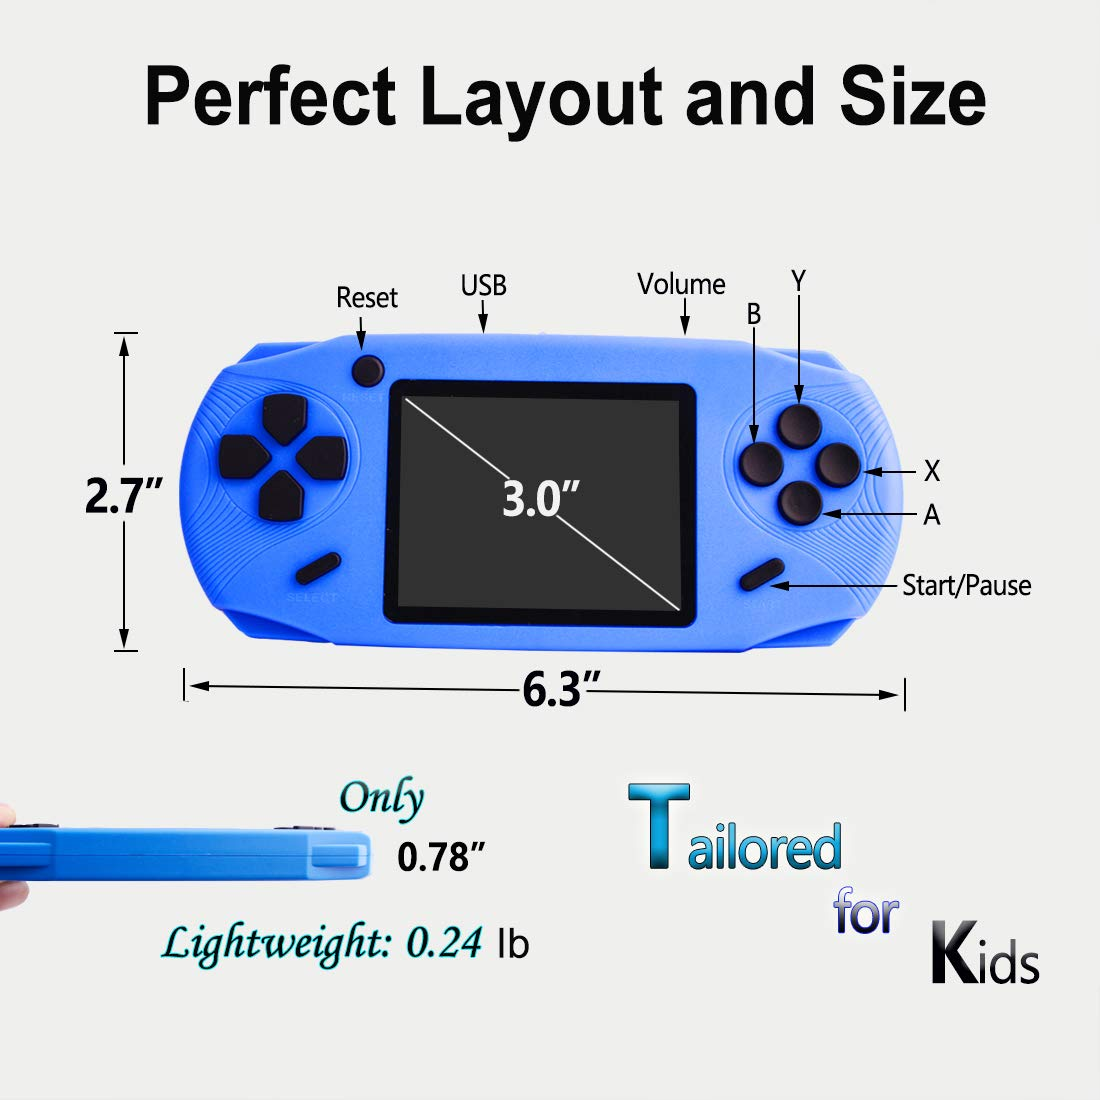 Black ZHISHAN16 Bit Handheld Game Console for Kids Adults 3.0 Large Screen Preloaded 100 HD Classic Video Games Seniors Electronic Handheld Games Player Boys Girls Birthday Xmas Present